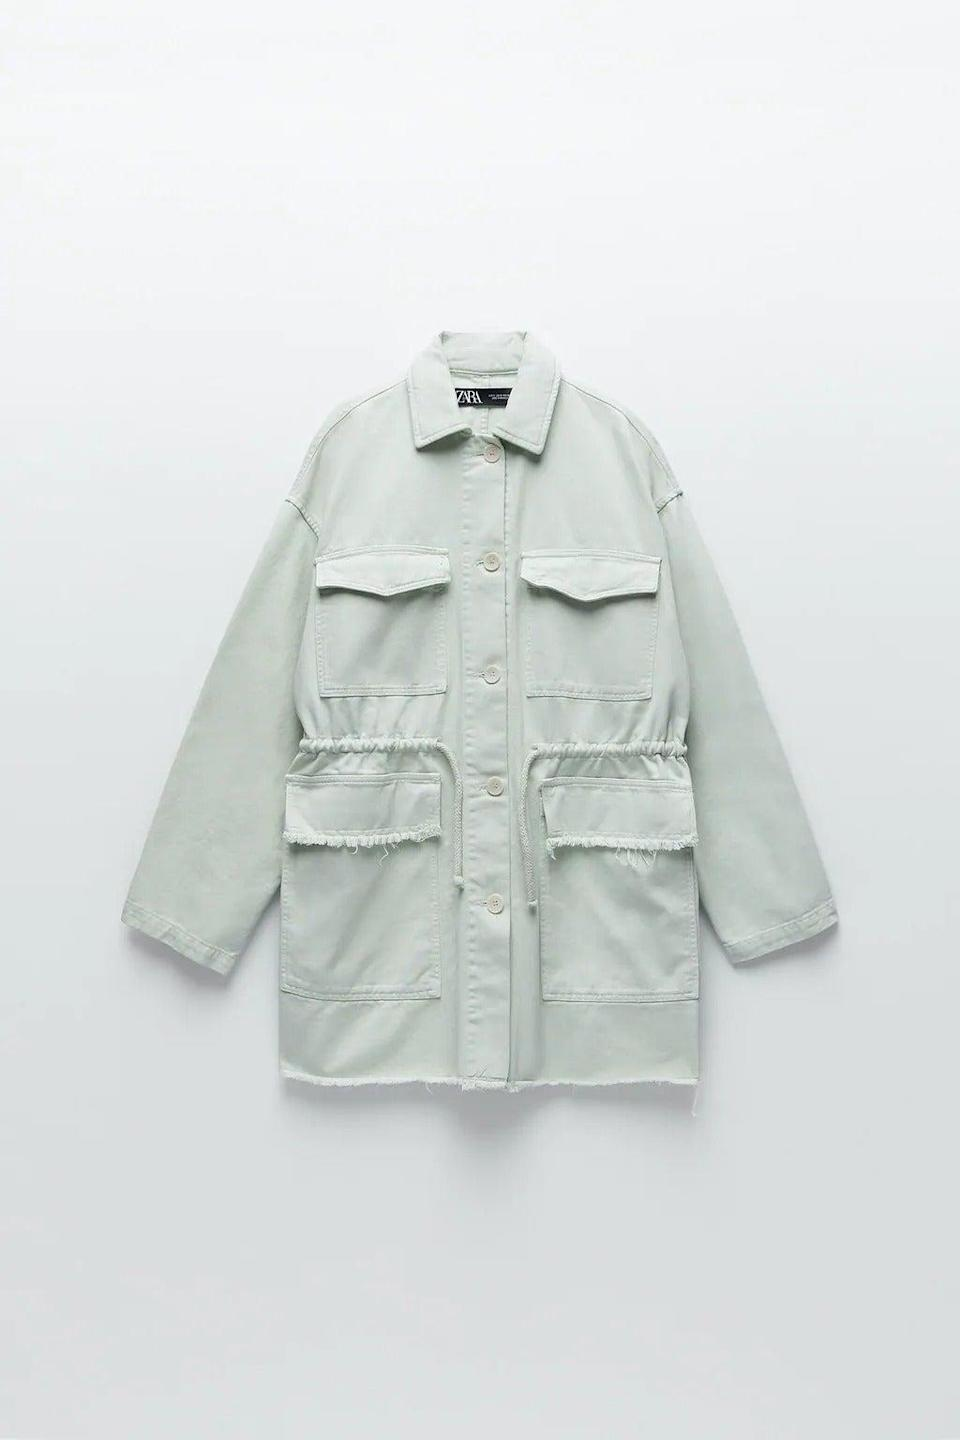 """I've been looking for a shirt to combat chilly evenings for a while but they've all been a bit too thin or have a pattern I'm not quite into. This one looks just right and I love the muted mint green hue.<br><br><strong>Zara</strong> Overshirt With Pockets, $, available at <a href=""""https://www.zara.com/uk/en/overshirt-with-pockets-p07929992.html?v1=57532513&v2=1549201"""" rel=""""nofollow noopener"""" target=""""_blank"""" data-ylk=""""slk:Zara"""" class=""""link rapid-noclick-resp"""">Zara</a>"""